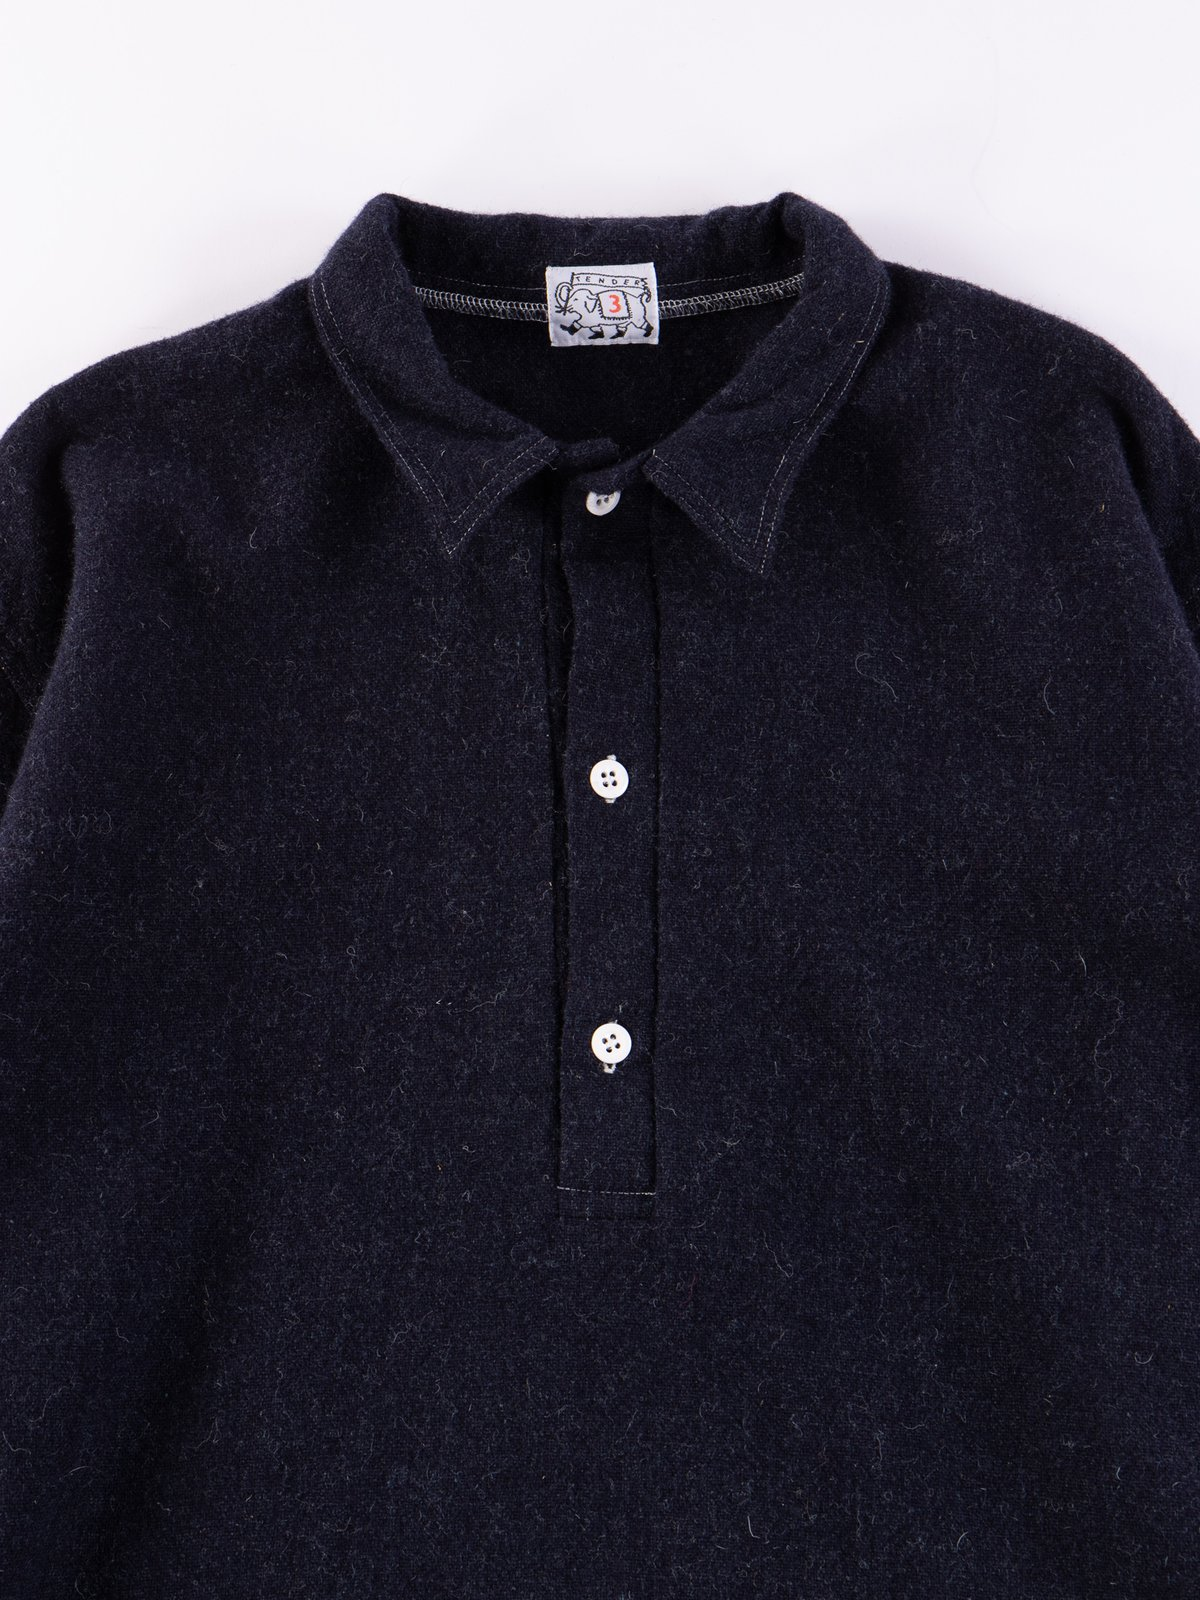 Navy Weavers Stock Pullover Tail Shirt - Image 3